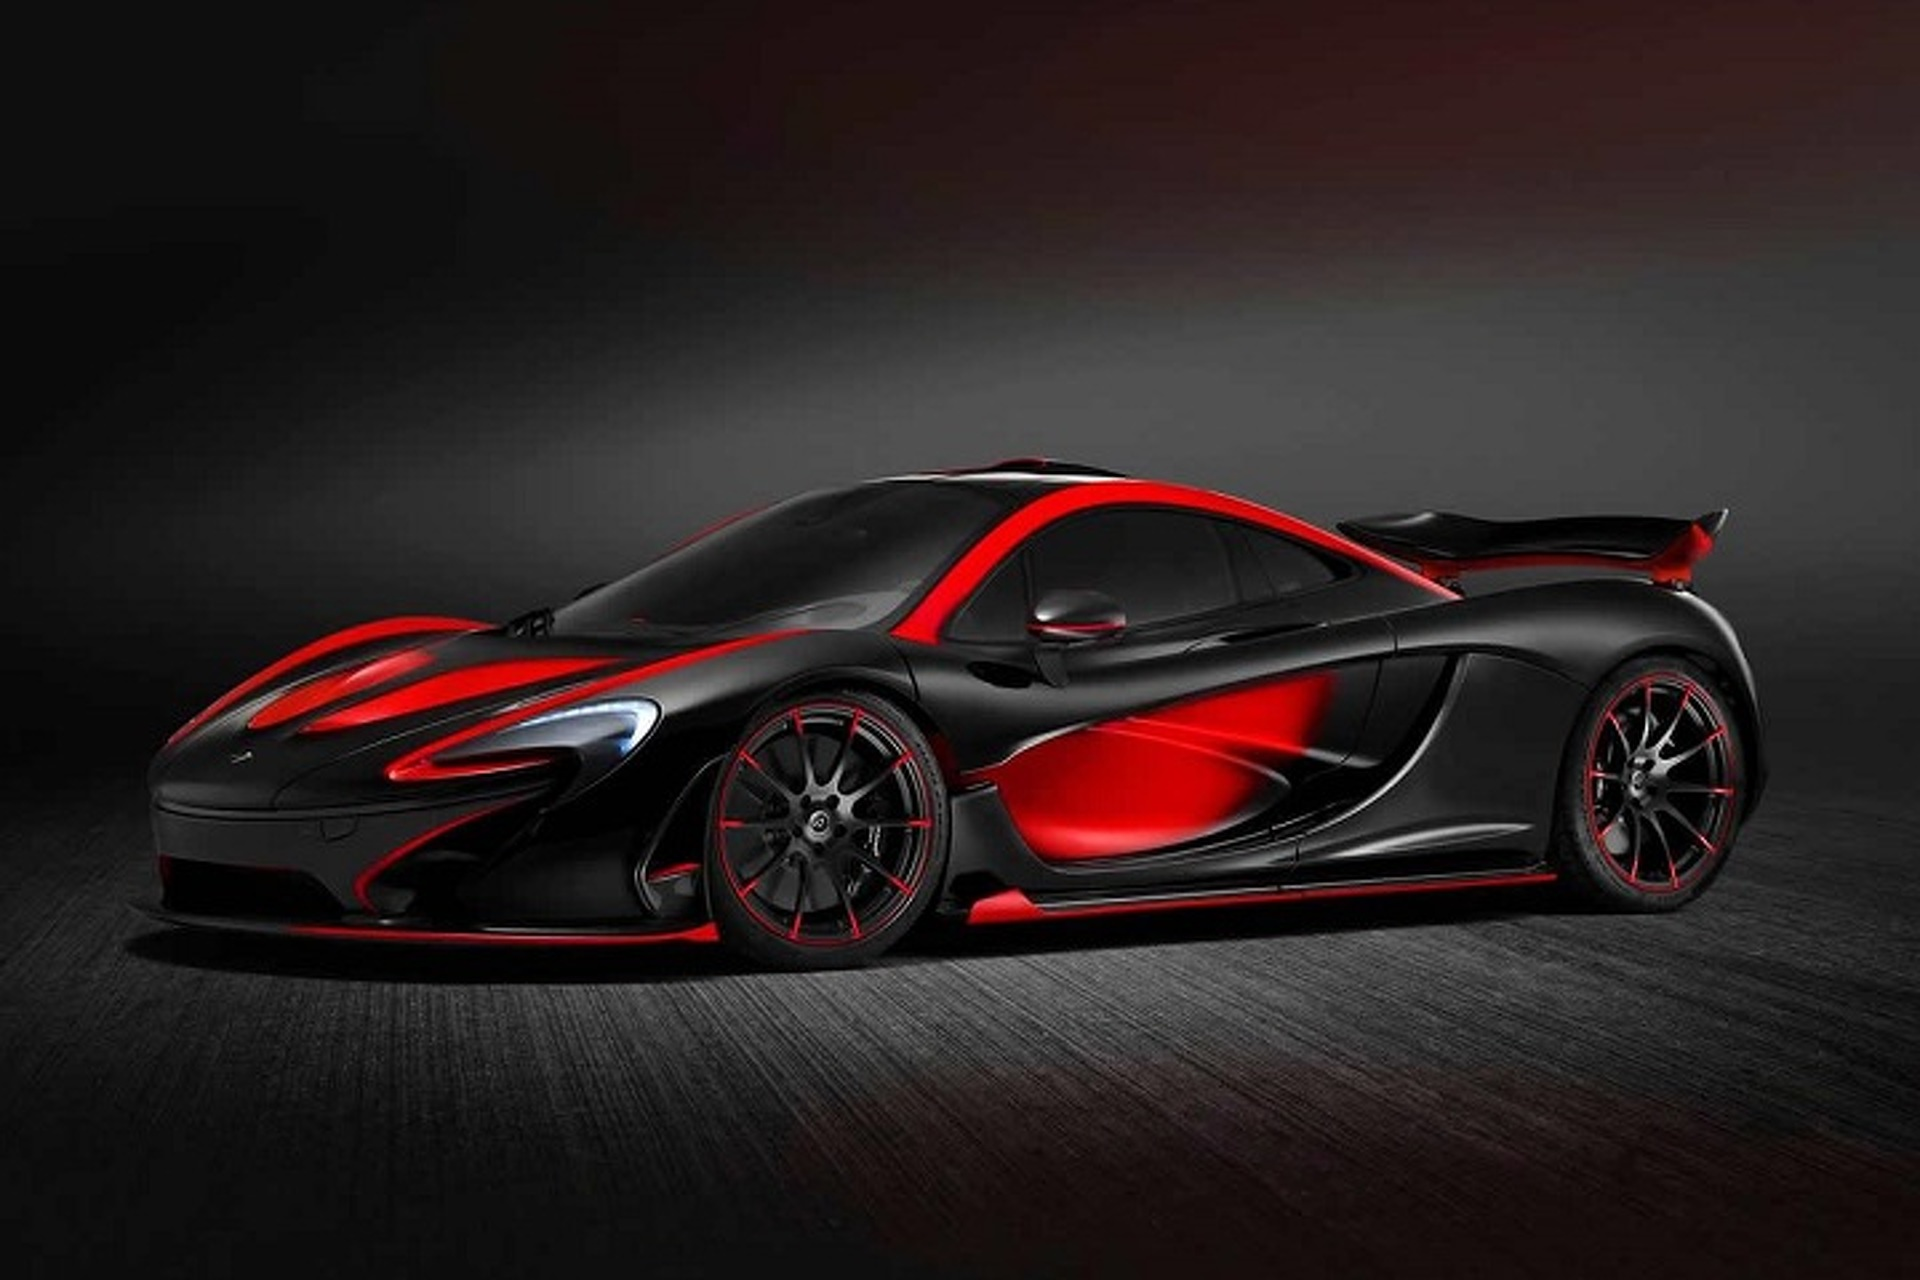 This Mclaren P1 Looks Wicked In Black And Red 2005 Suzuki Reno Wiring Diagram